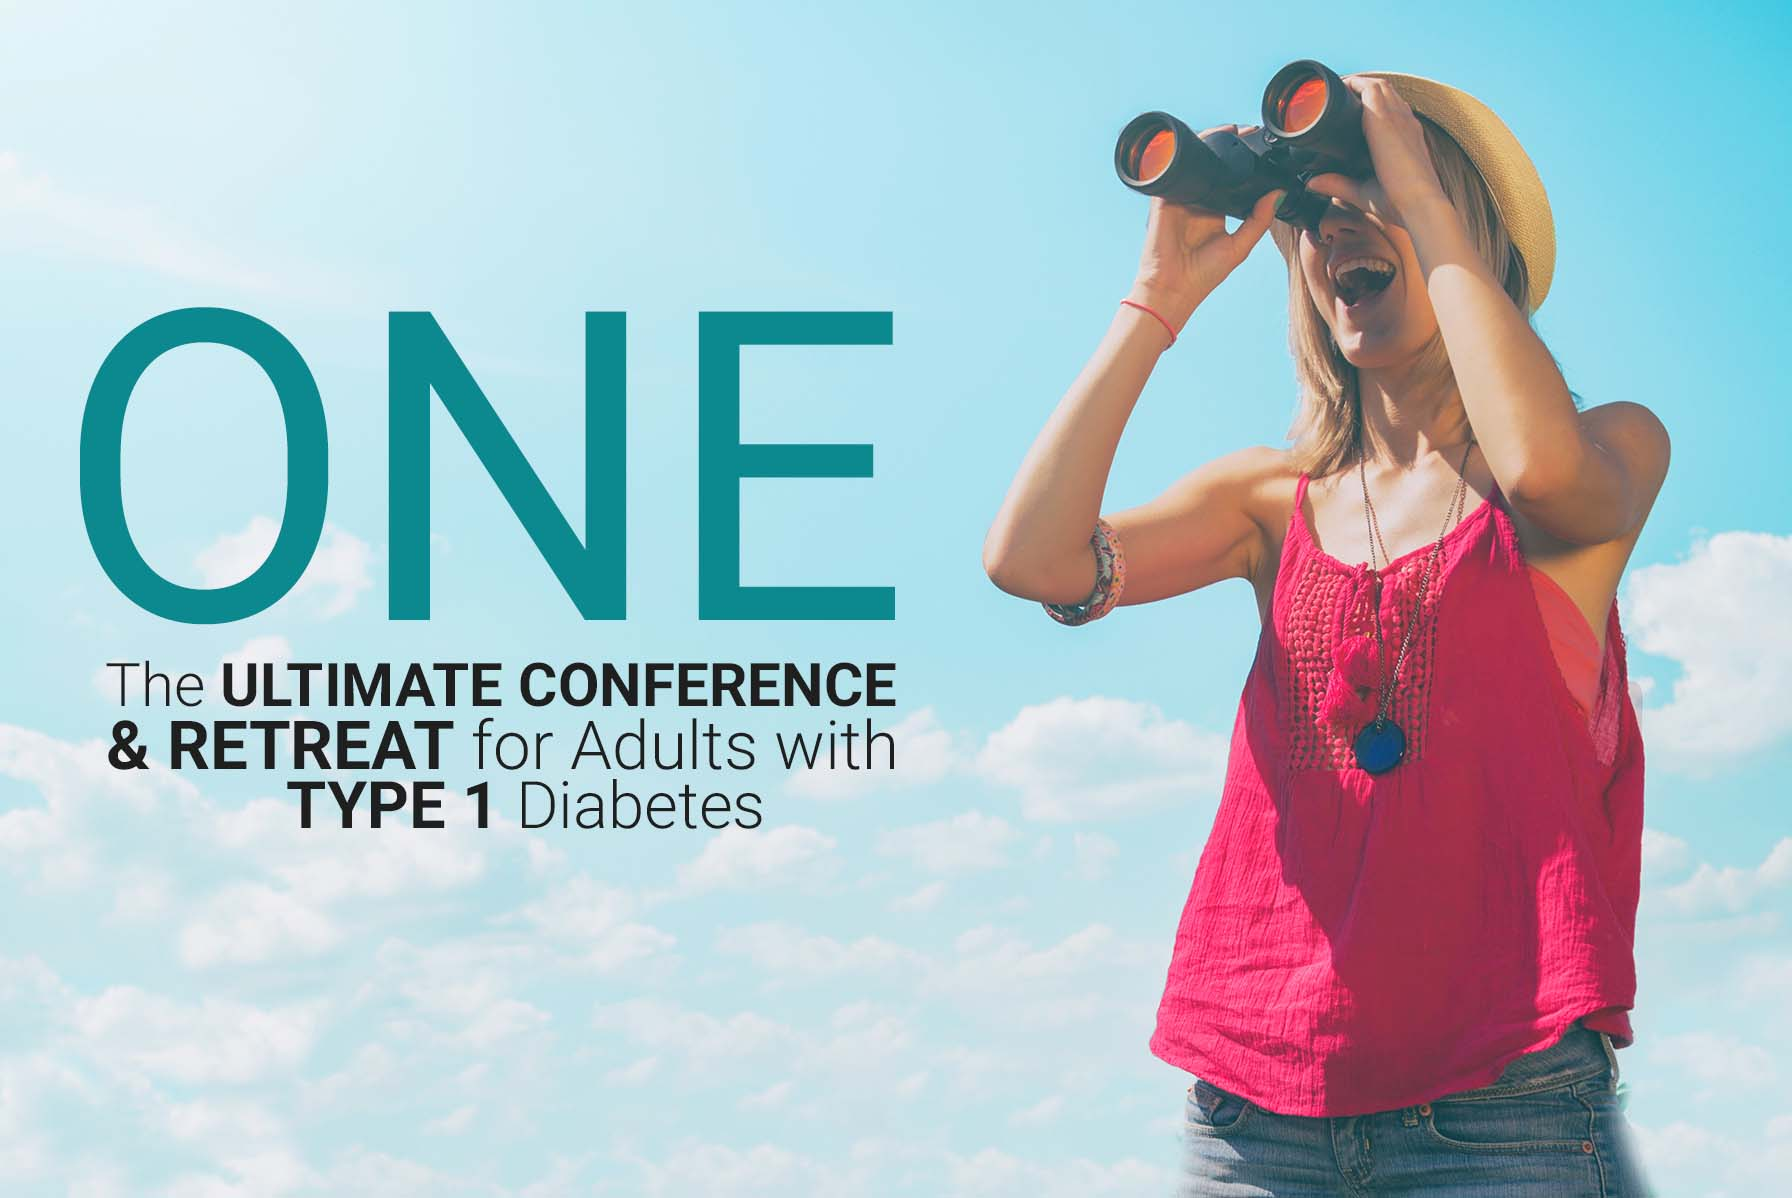 ONE 2018: The Ultimate Conference & Retreat <br />for Adults with Type 1